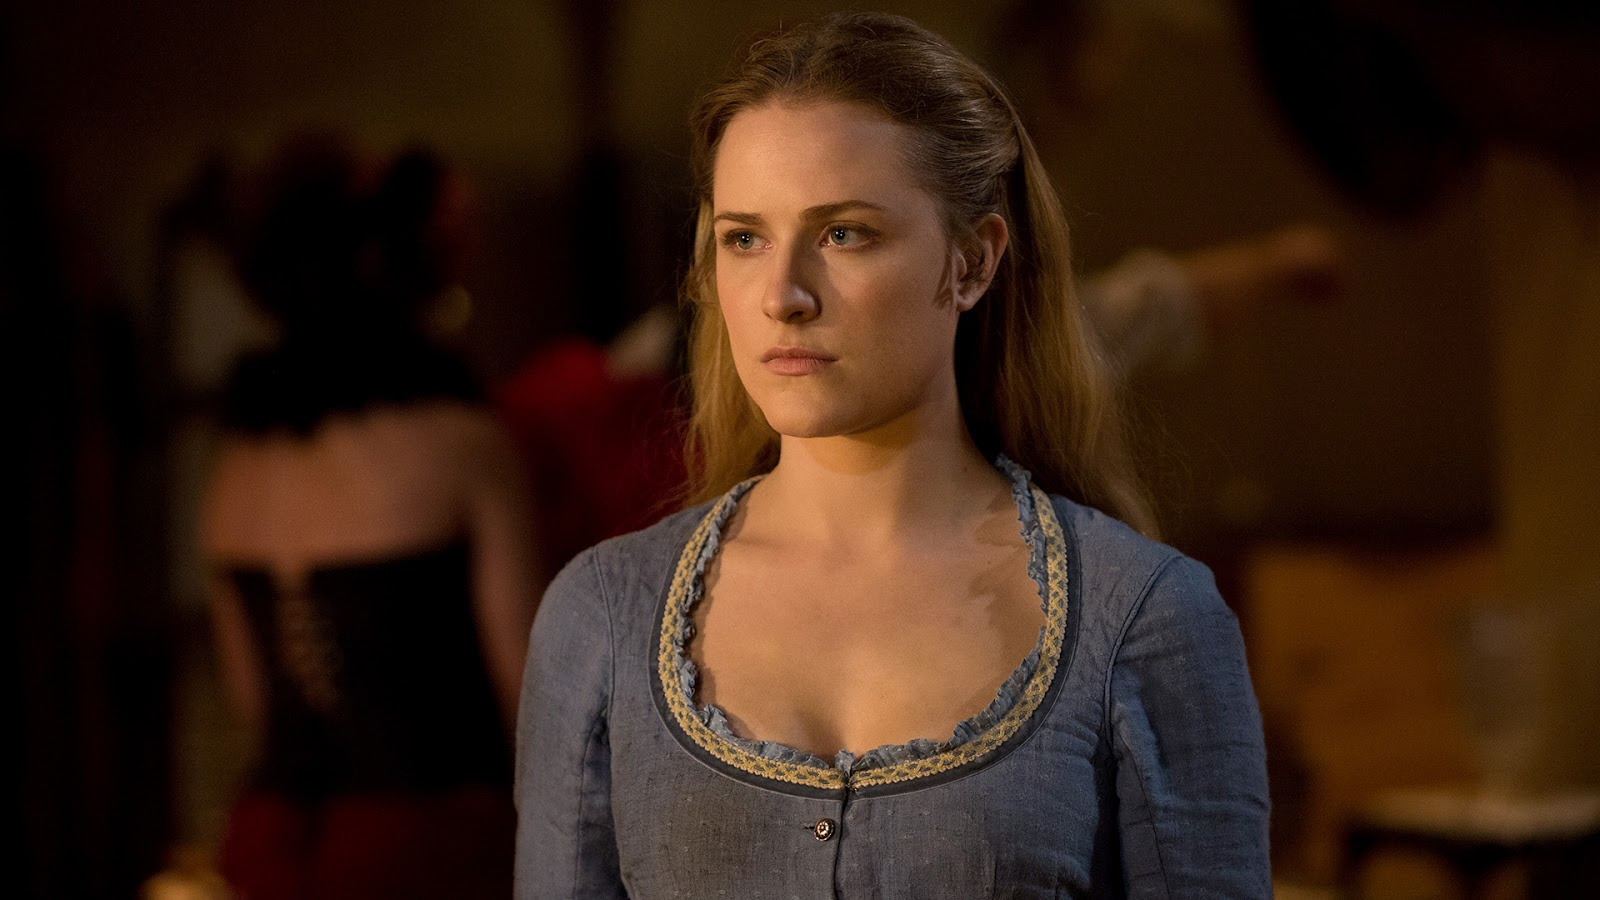 Dolores Abernathy, interpretada por Evan Rachel Wood en 'Westworld'